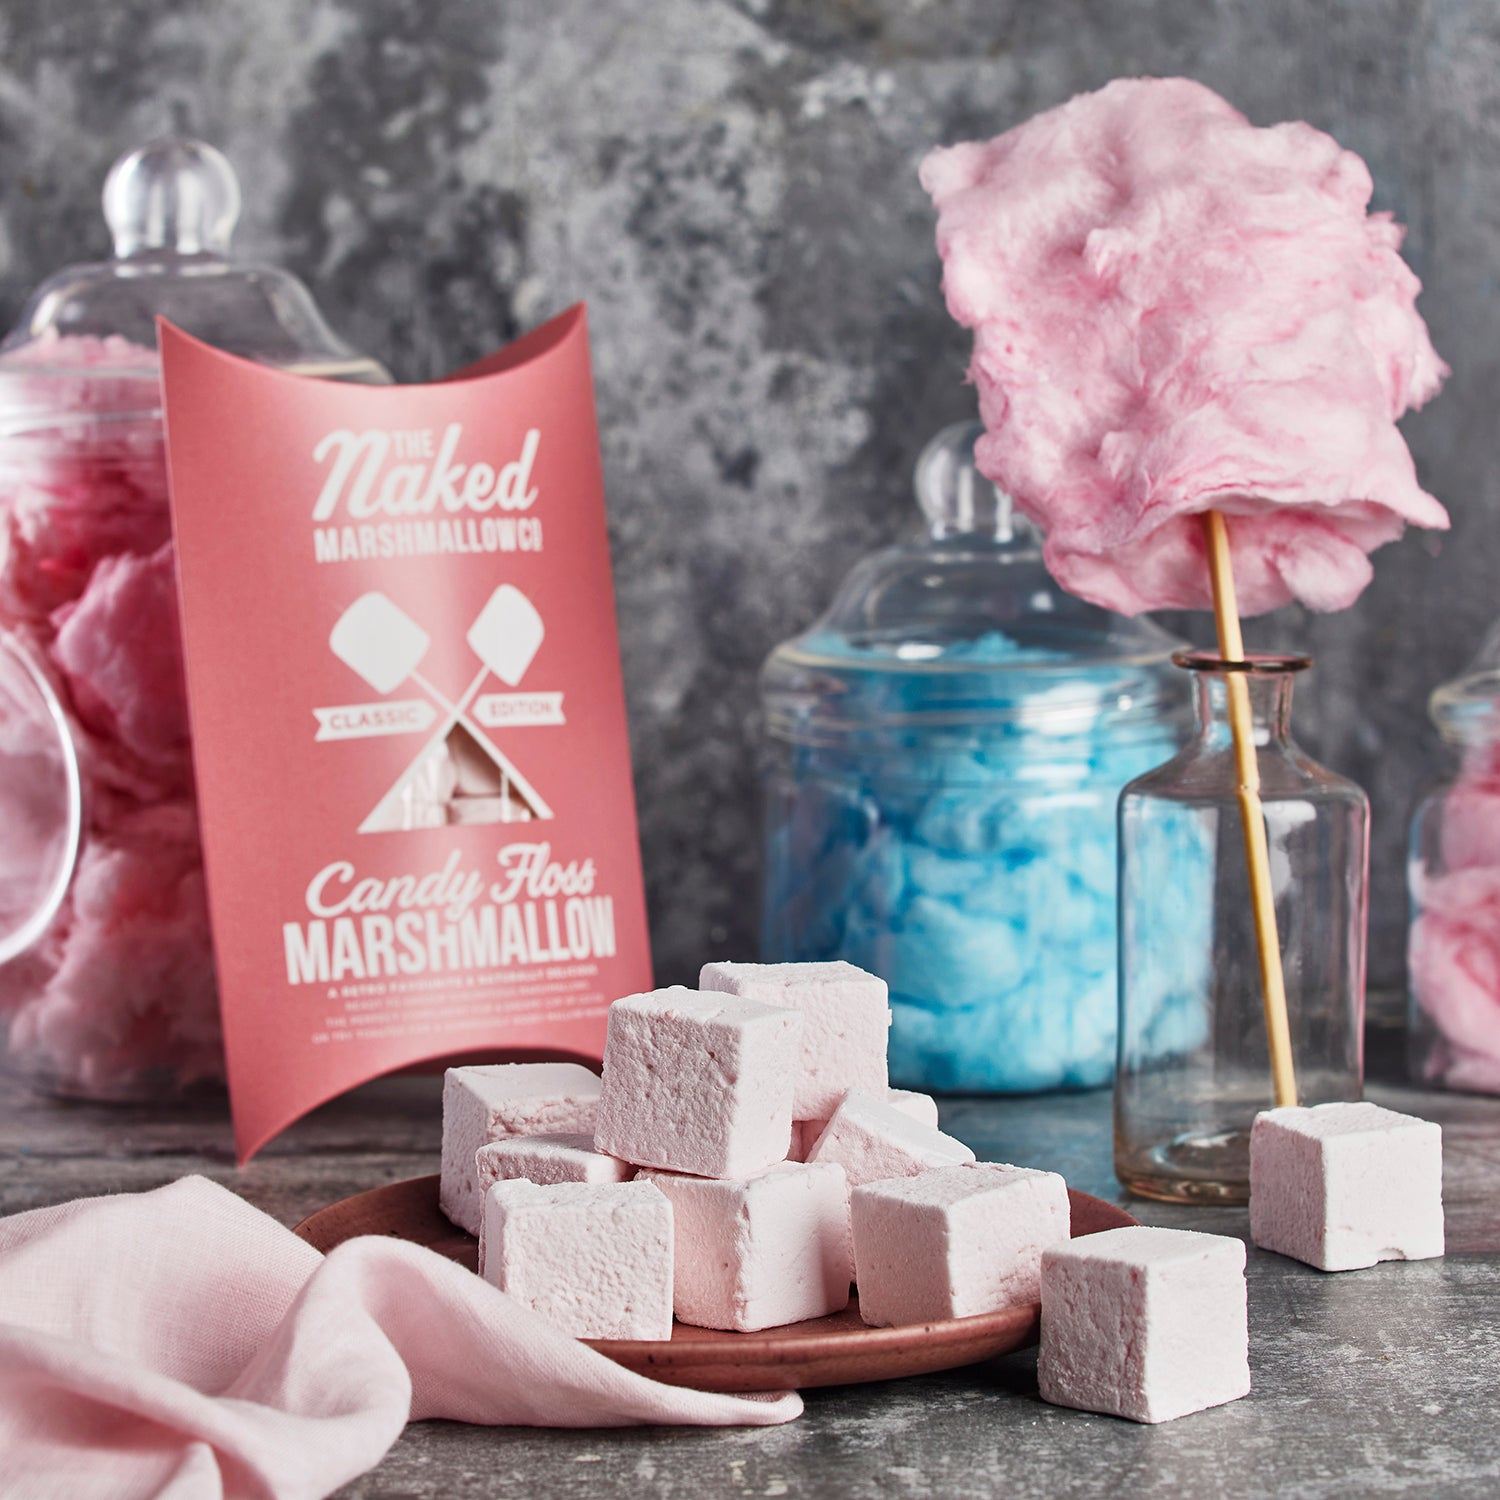 Candy Floss Gourmet Marshmallows